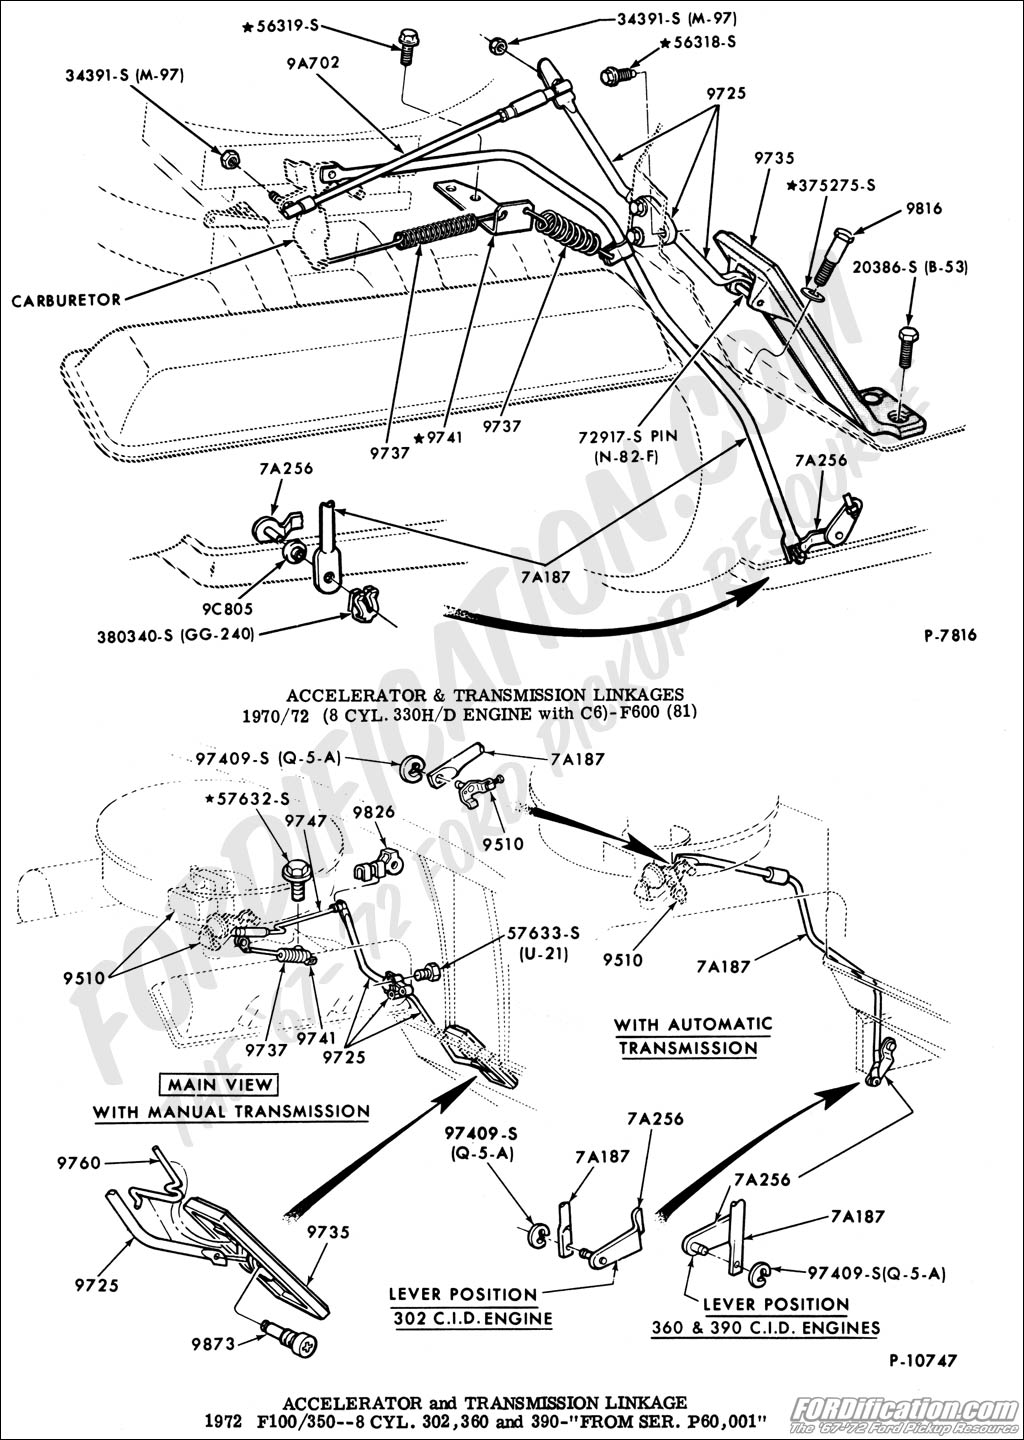 throttle linkage and kick down linkage for 1972 F100 360 2